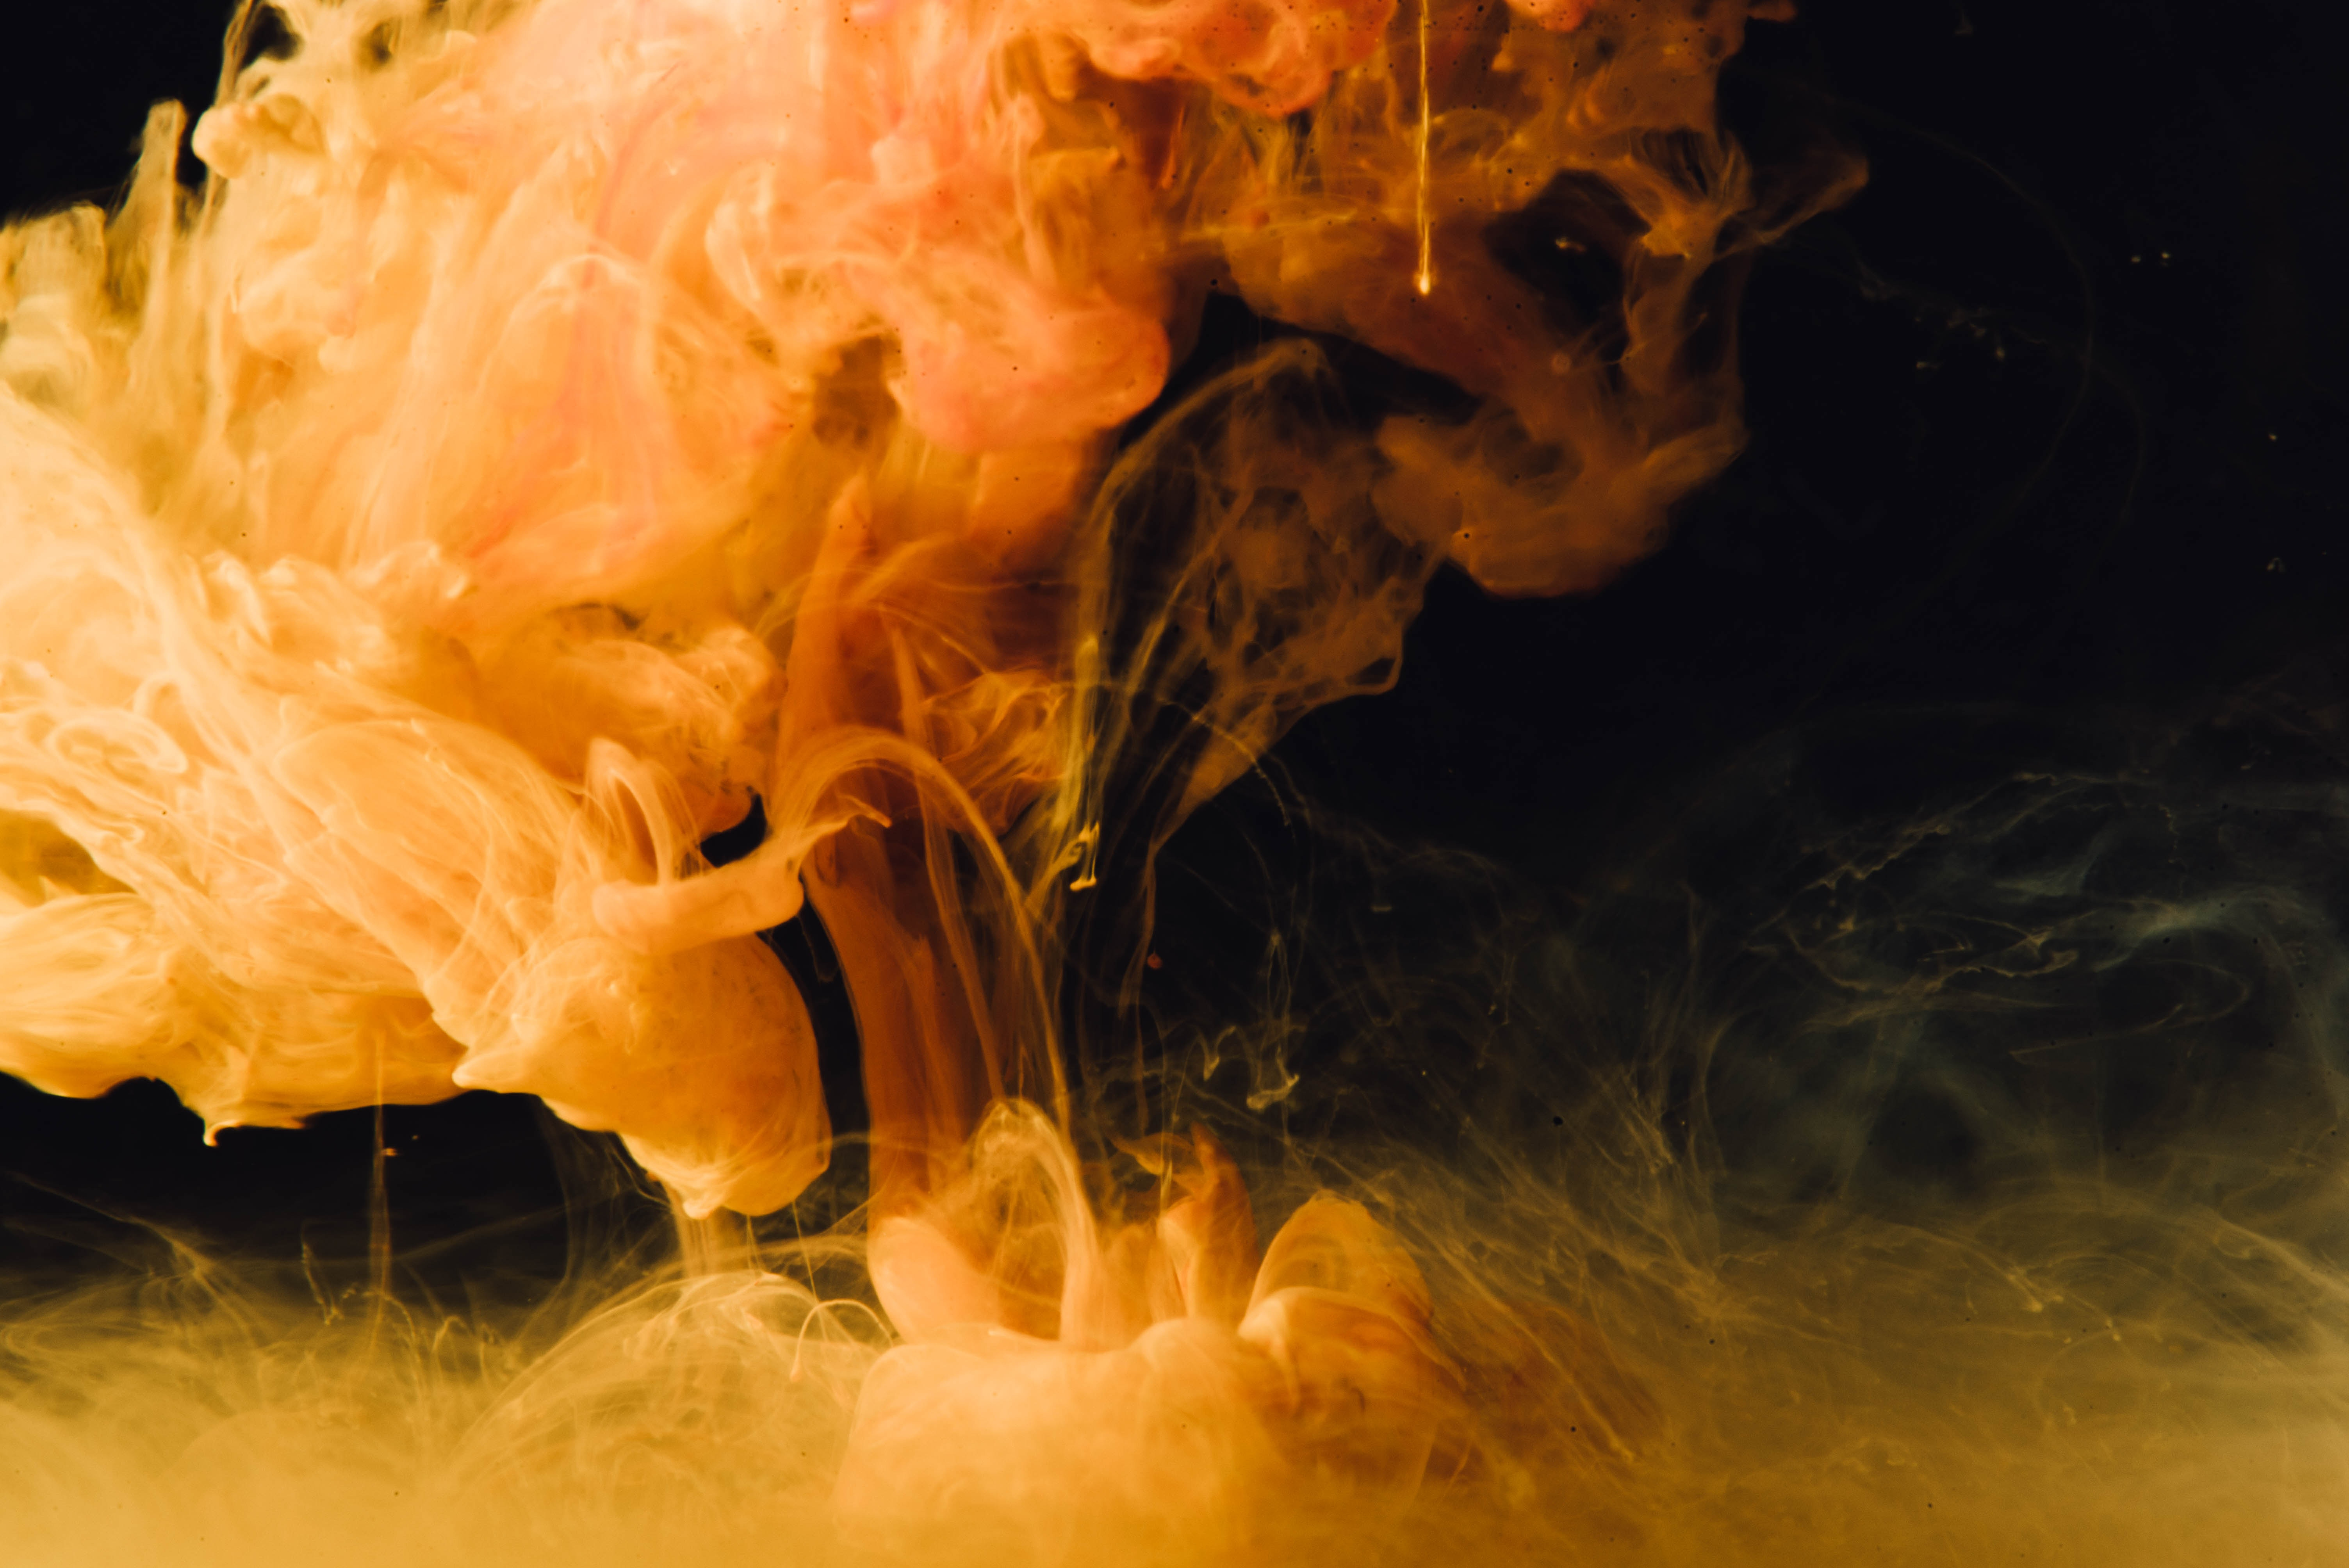 113950 download wallpaper Abstract, Shroud, Light Coloured, Light, Smoke screensavers and pictures for free